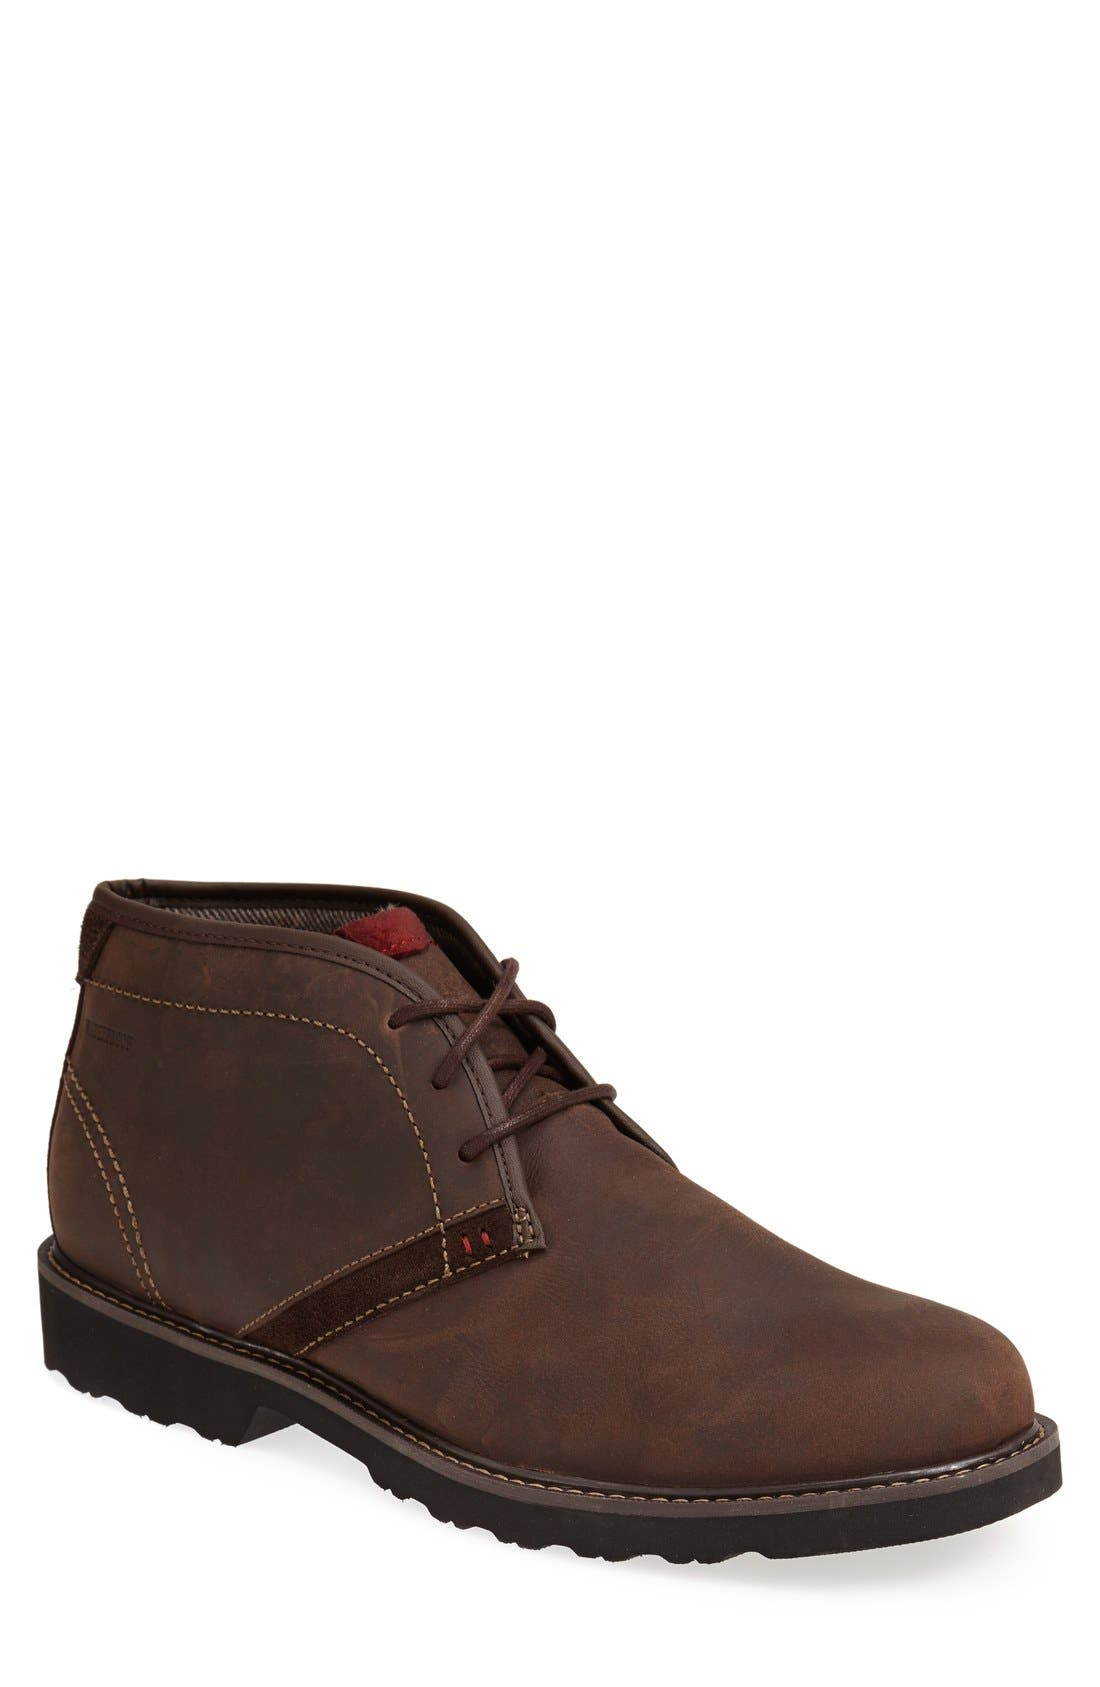 Dunham 'REVdash' Chukka Boot (Men)